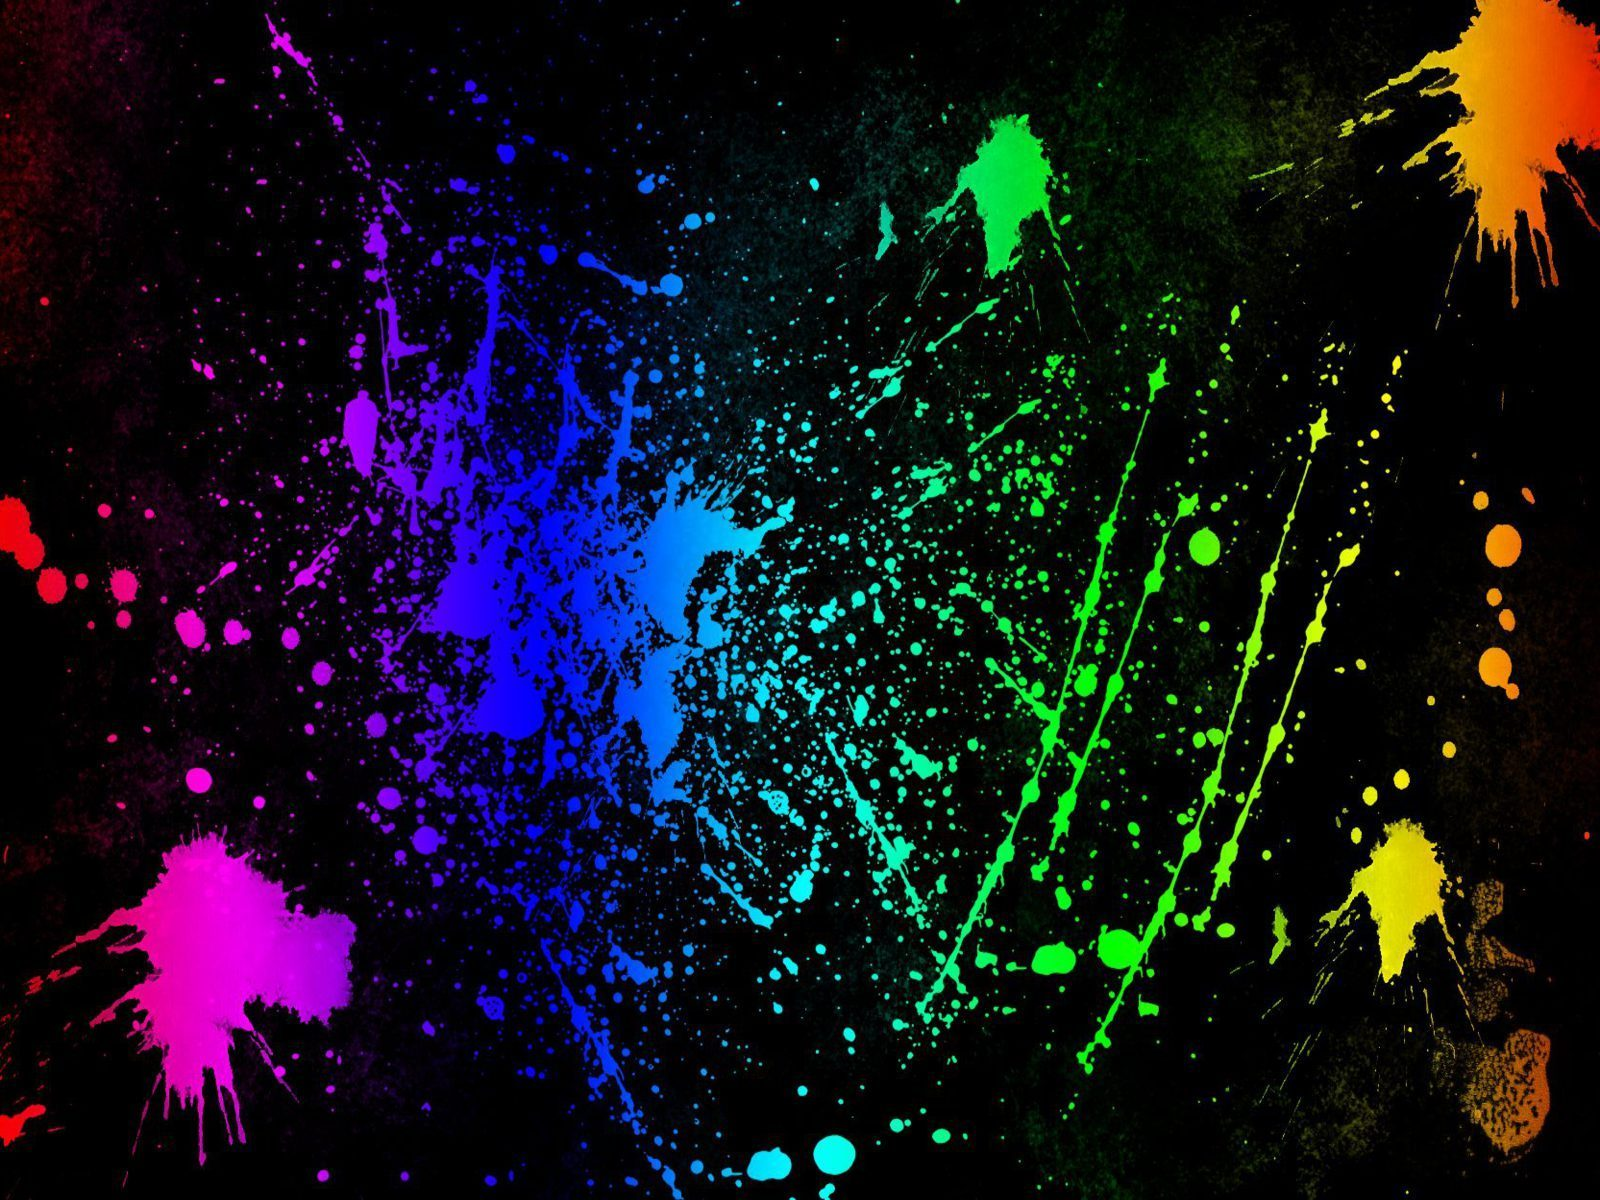 Neon Colors Rock Images Splatter HD Wallpaper And Background Photos